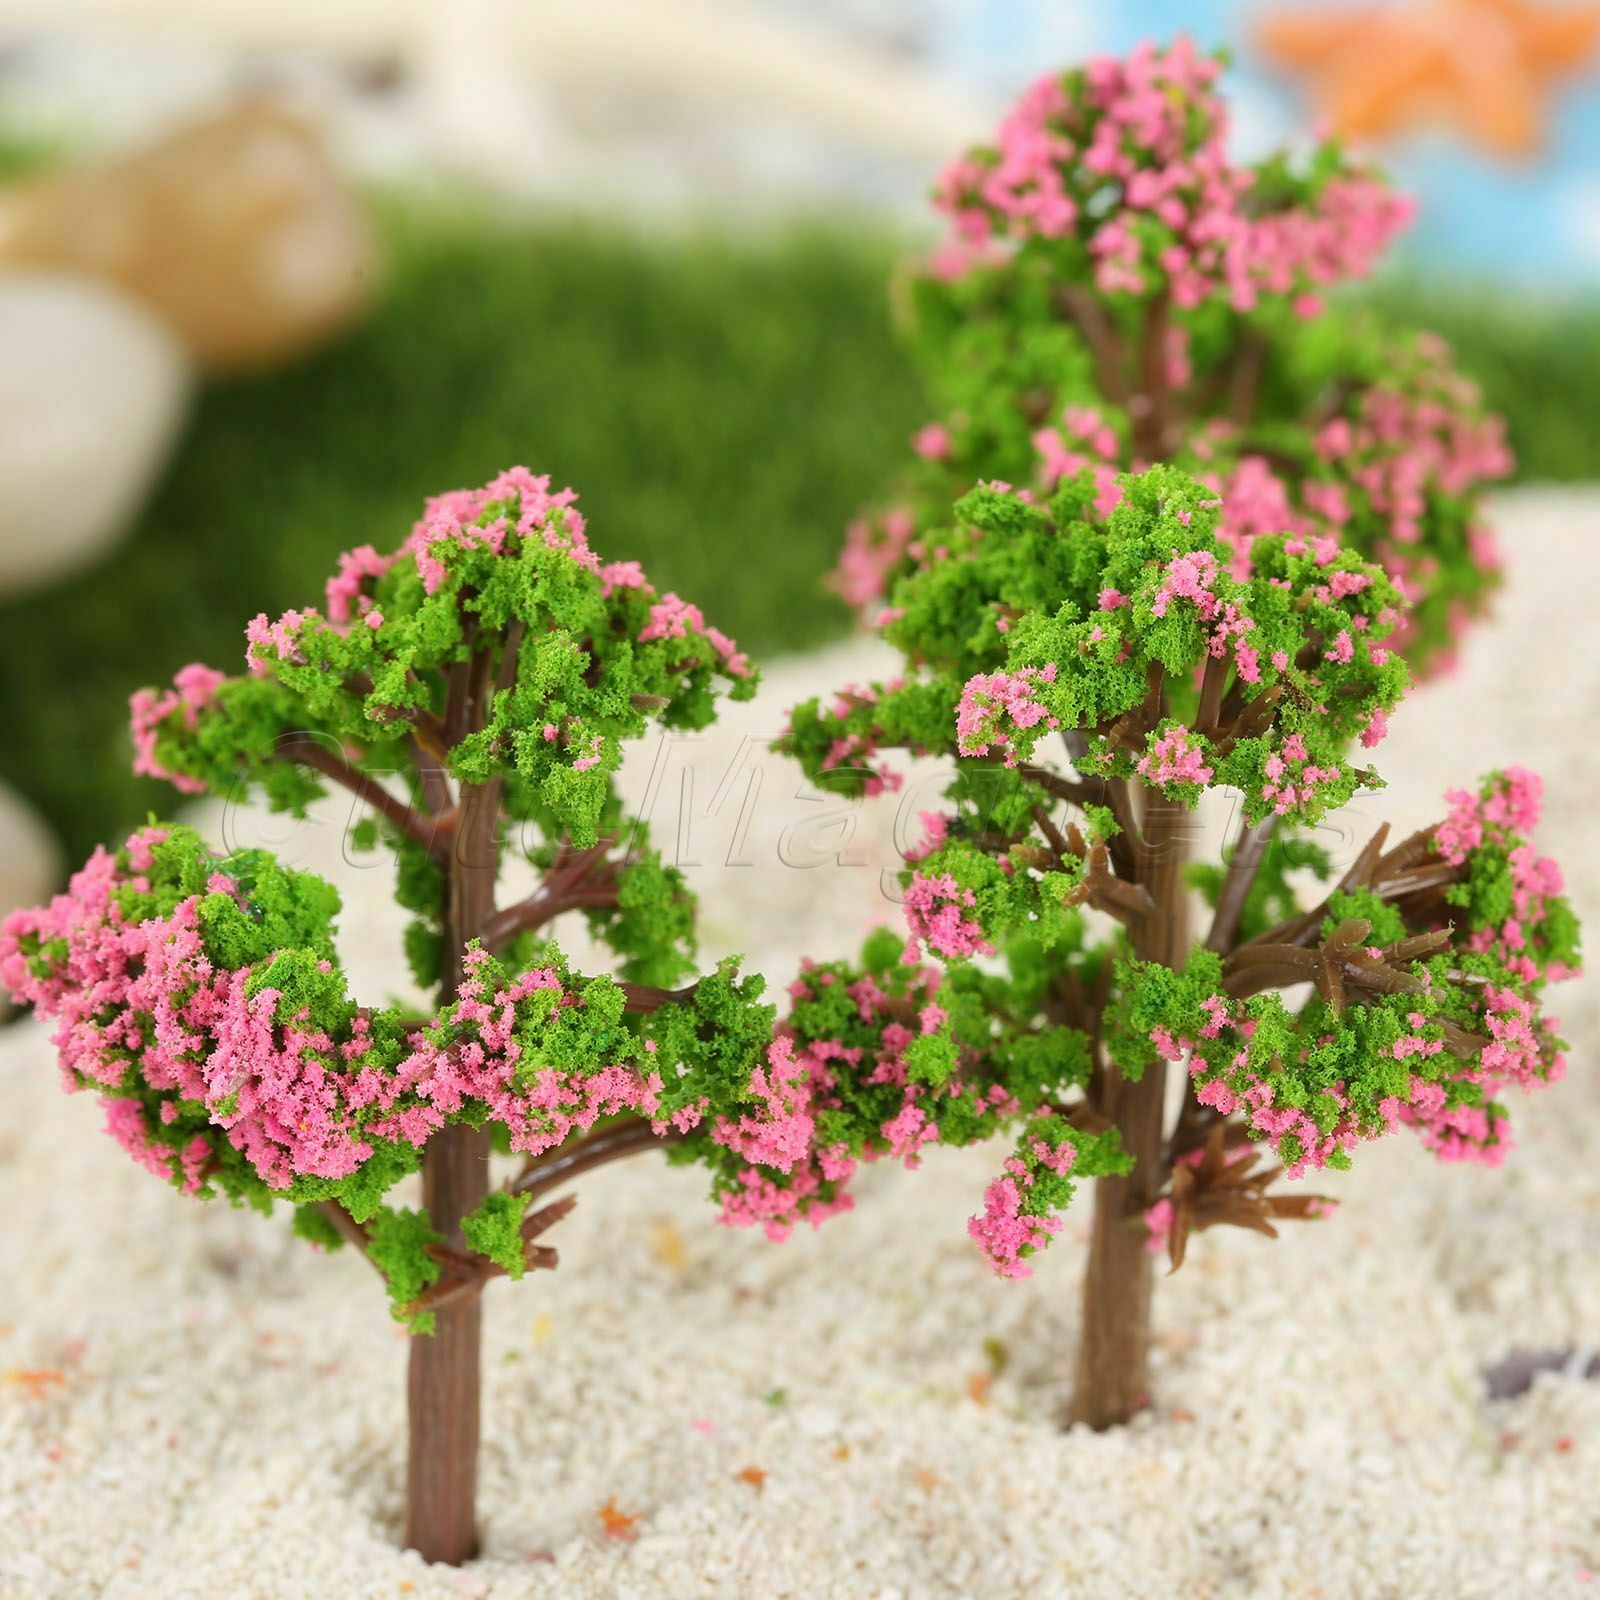 1//5pcs Mini Plant Flower Tree Plant Bonsai Fairy Dollhouse DIY Craft Home Décor